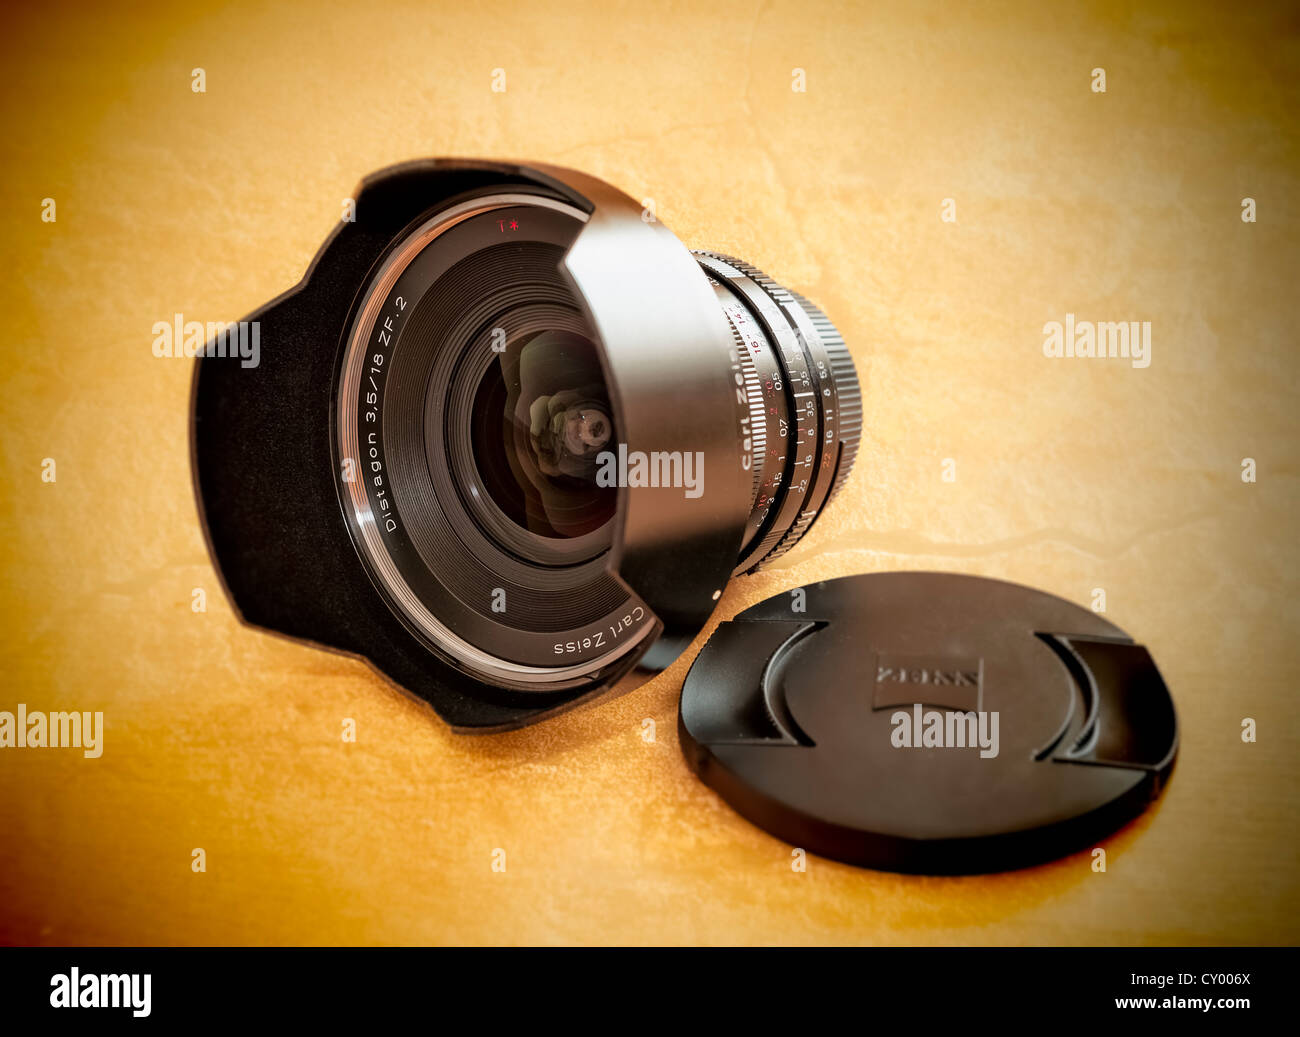 Wide-angle lens, Zeiss Distagon ZN.2, 18mm, with lid and lens hood - Stock Image